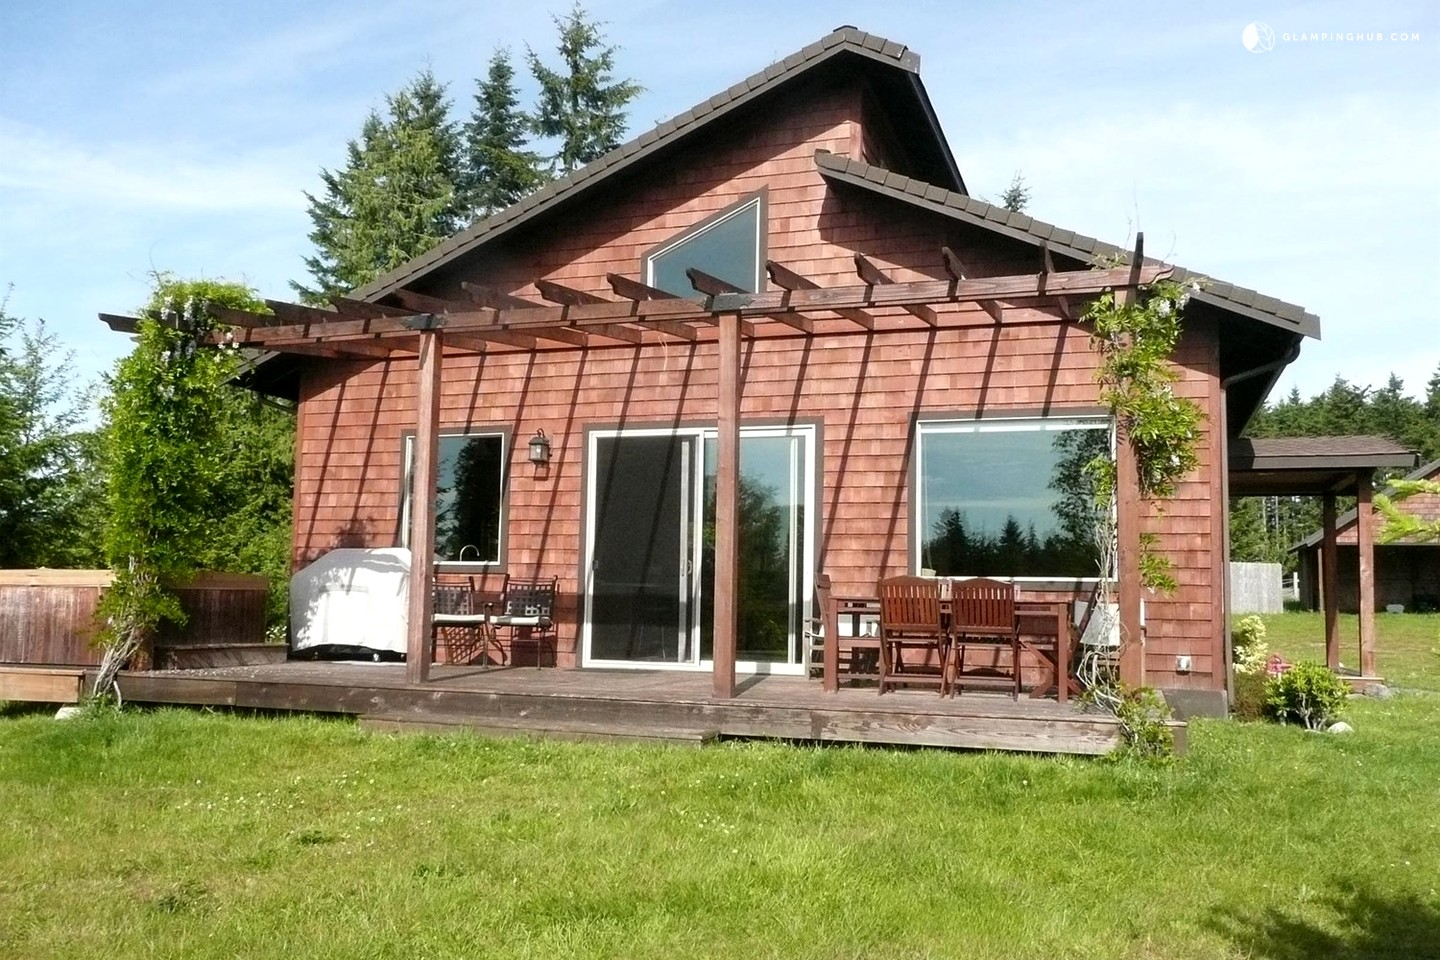 Cabin rental with hot tub in port angeles washington for Washington state cabins for rent